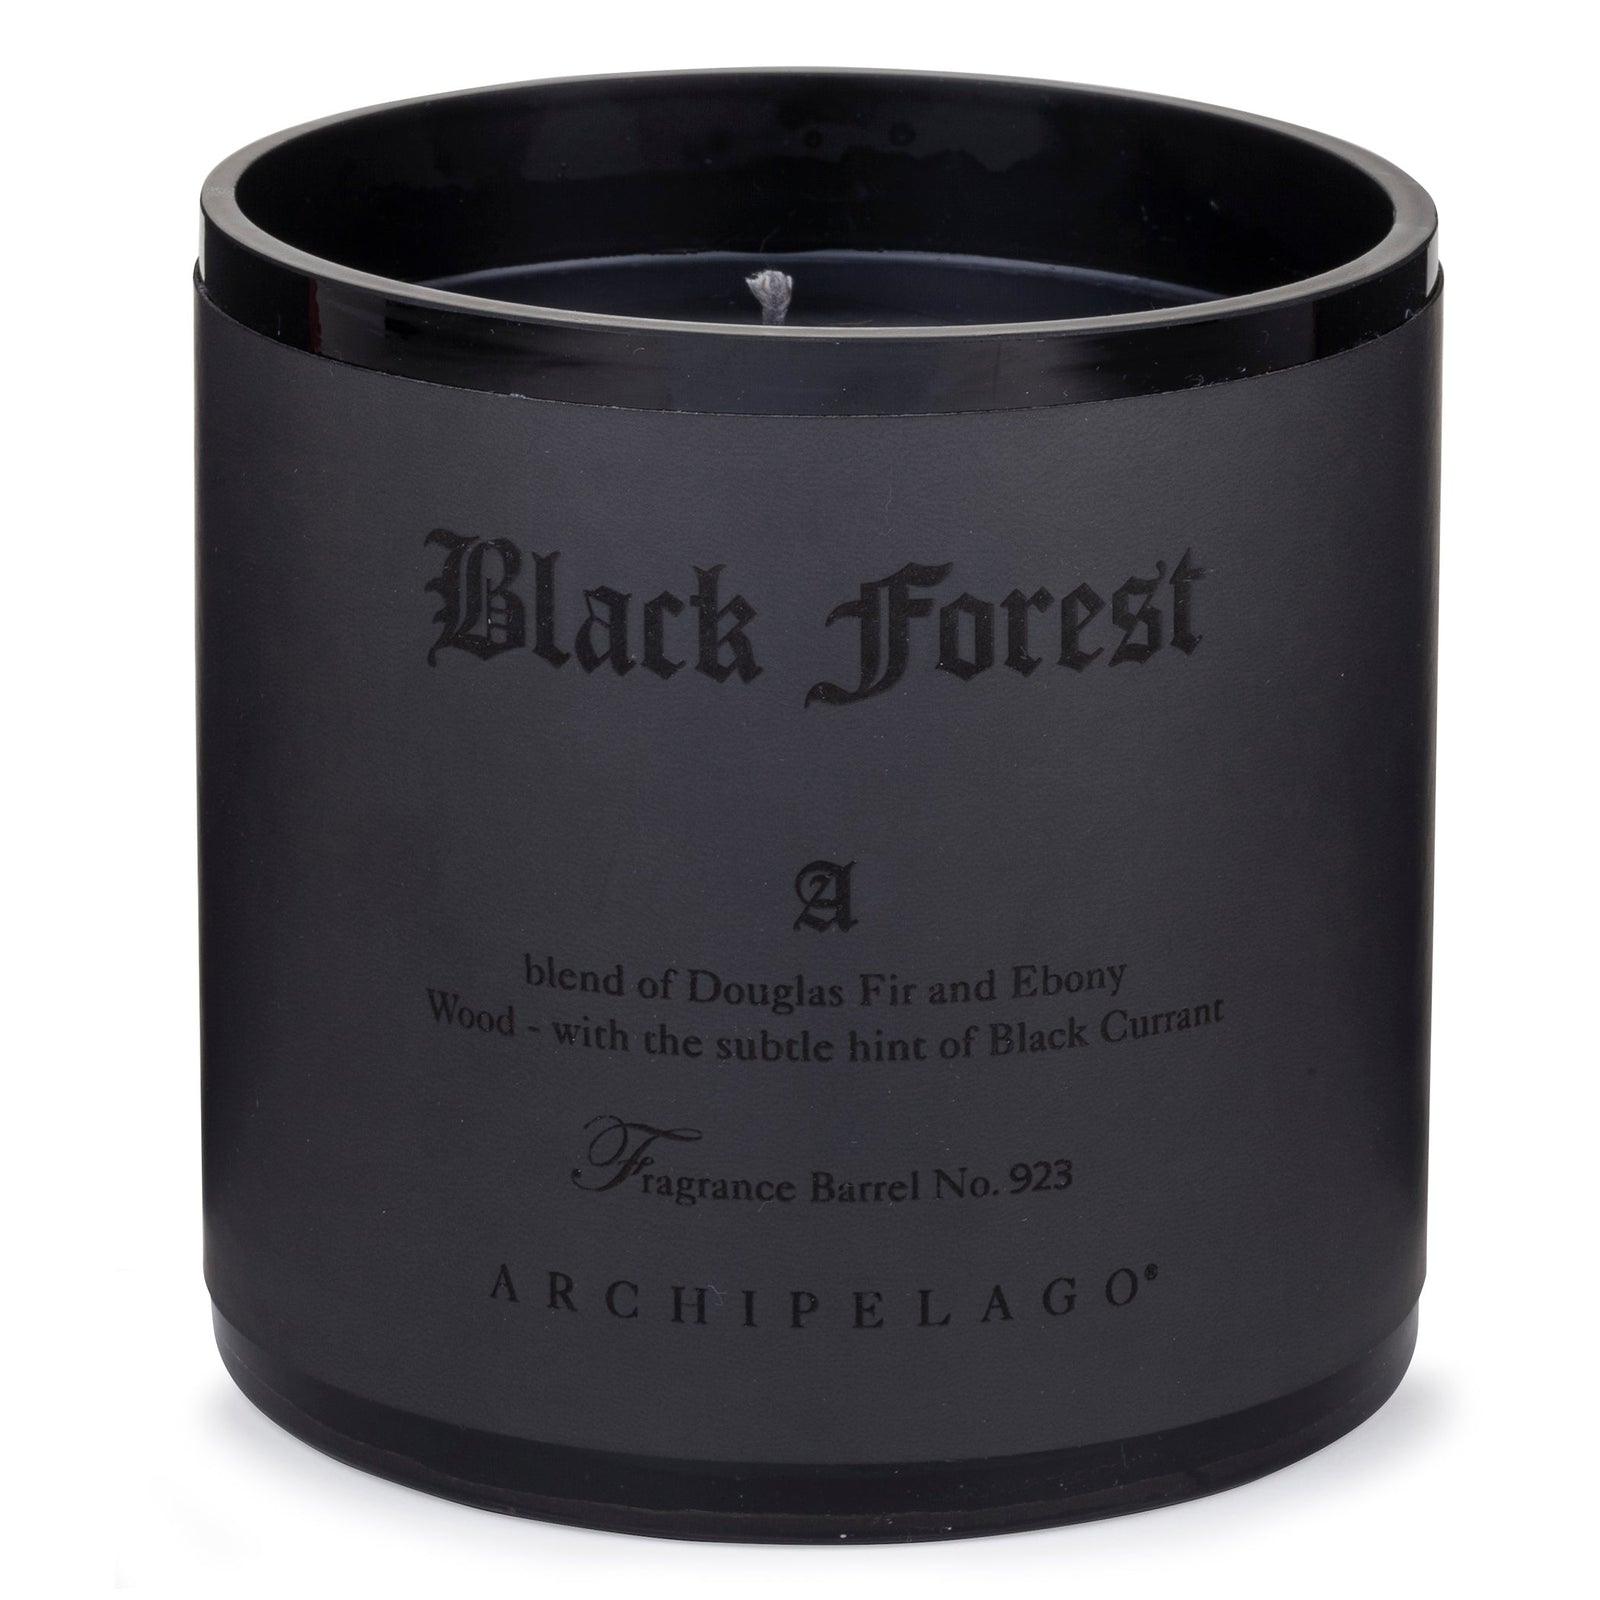 Black Forest XL 3 Wick Candle will fill your space with the warm and sultry blend of Douglas Fir and Dark Ebony Woods with hints of Black Currant for hundreds of hours